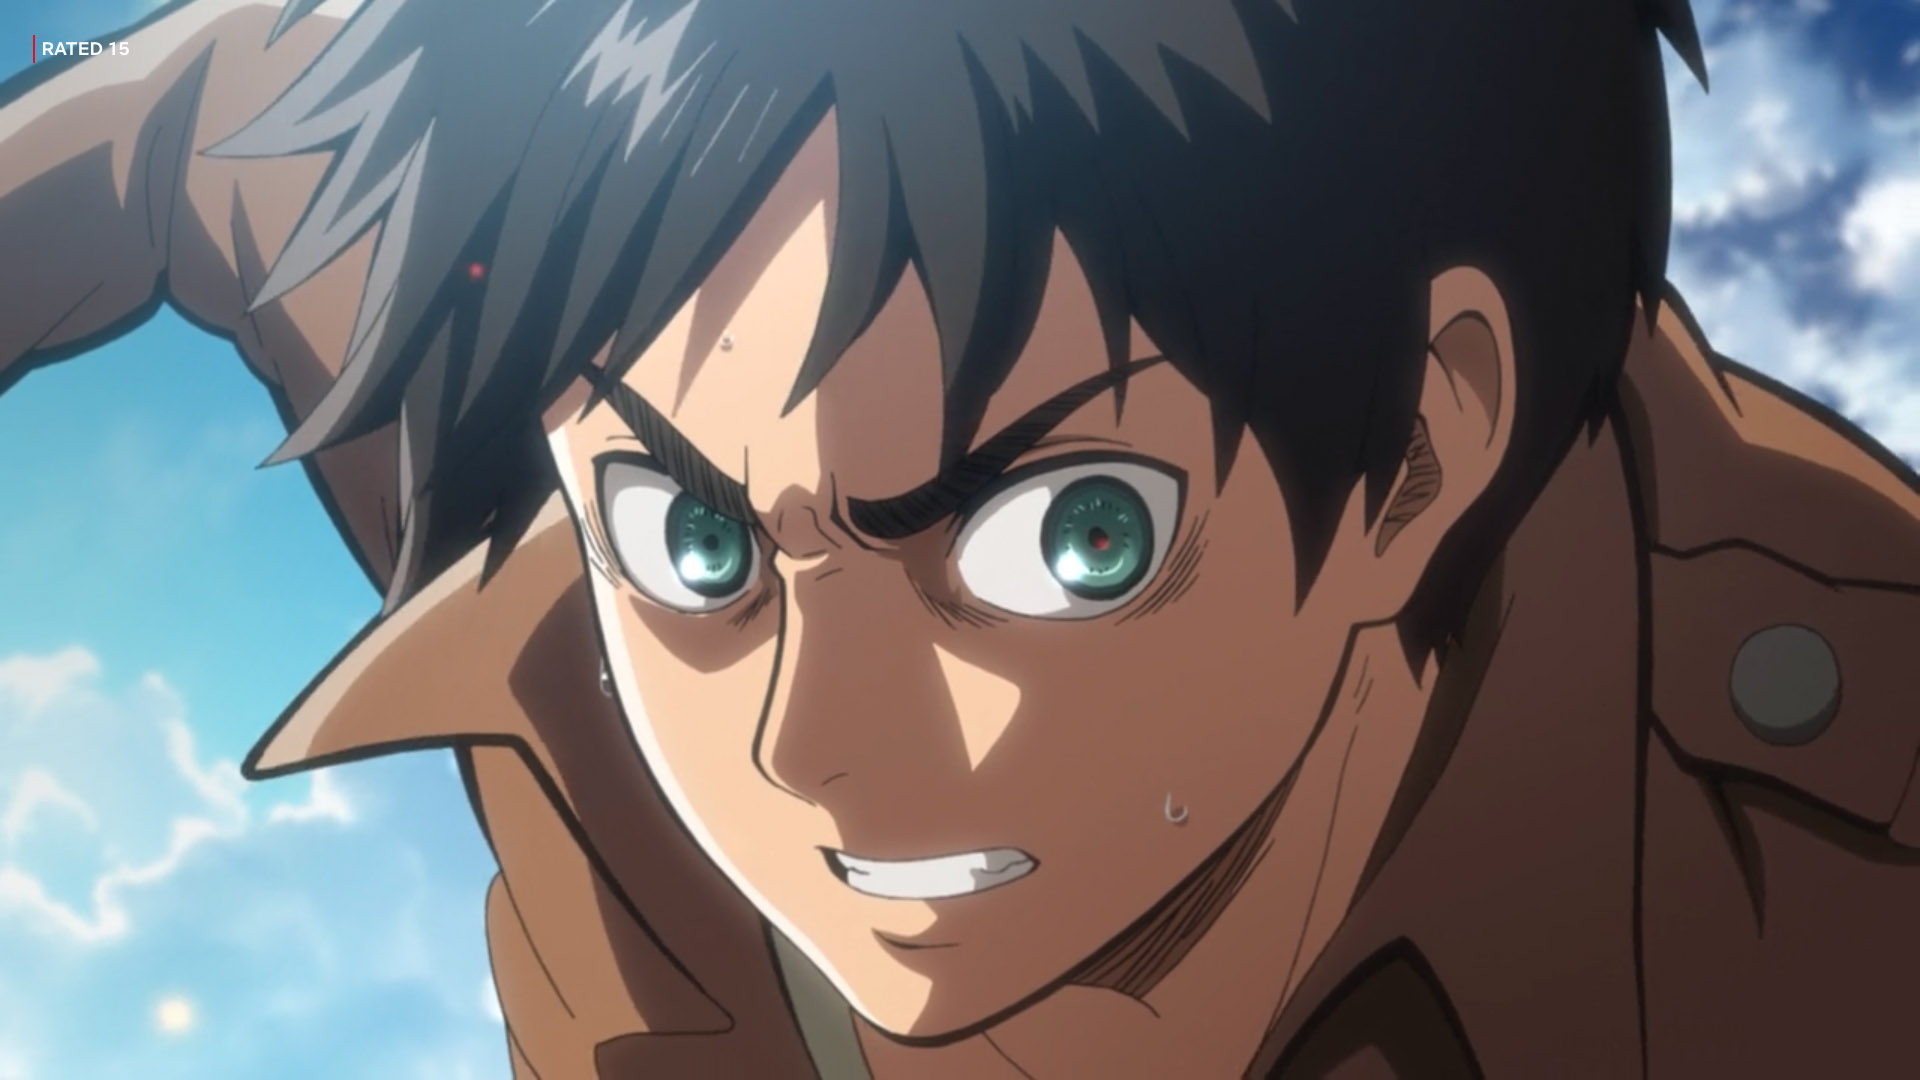 Attack on Titan season 4: everything we know about the